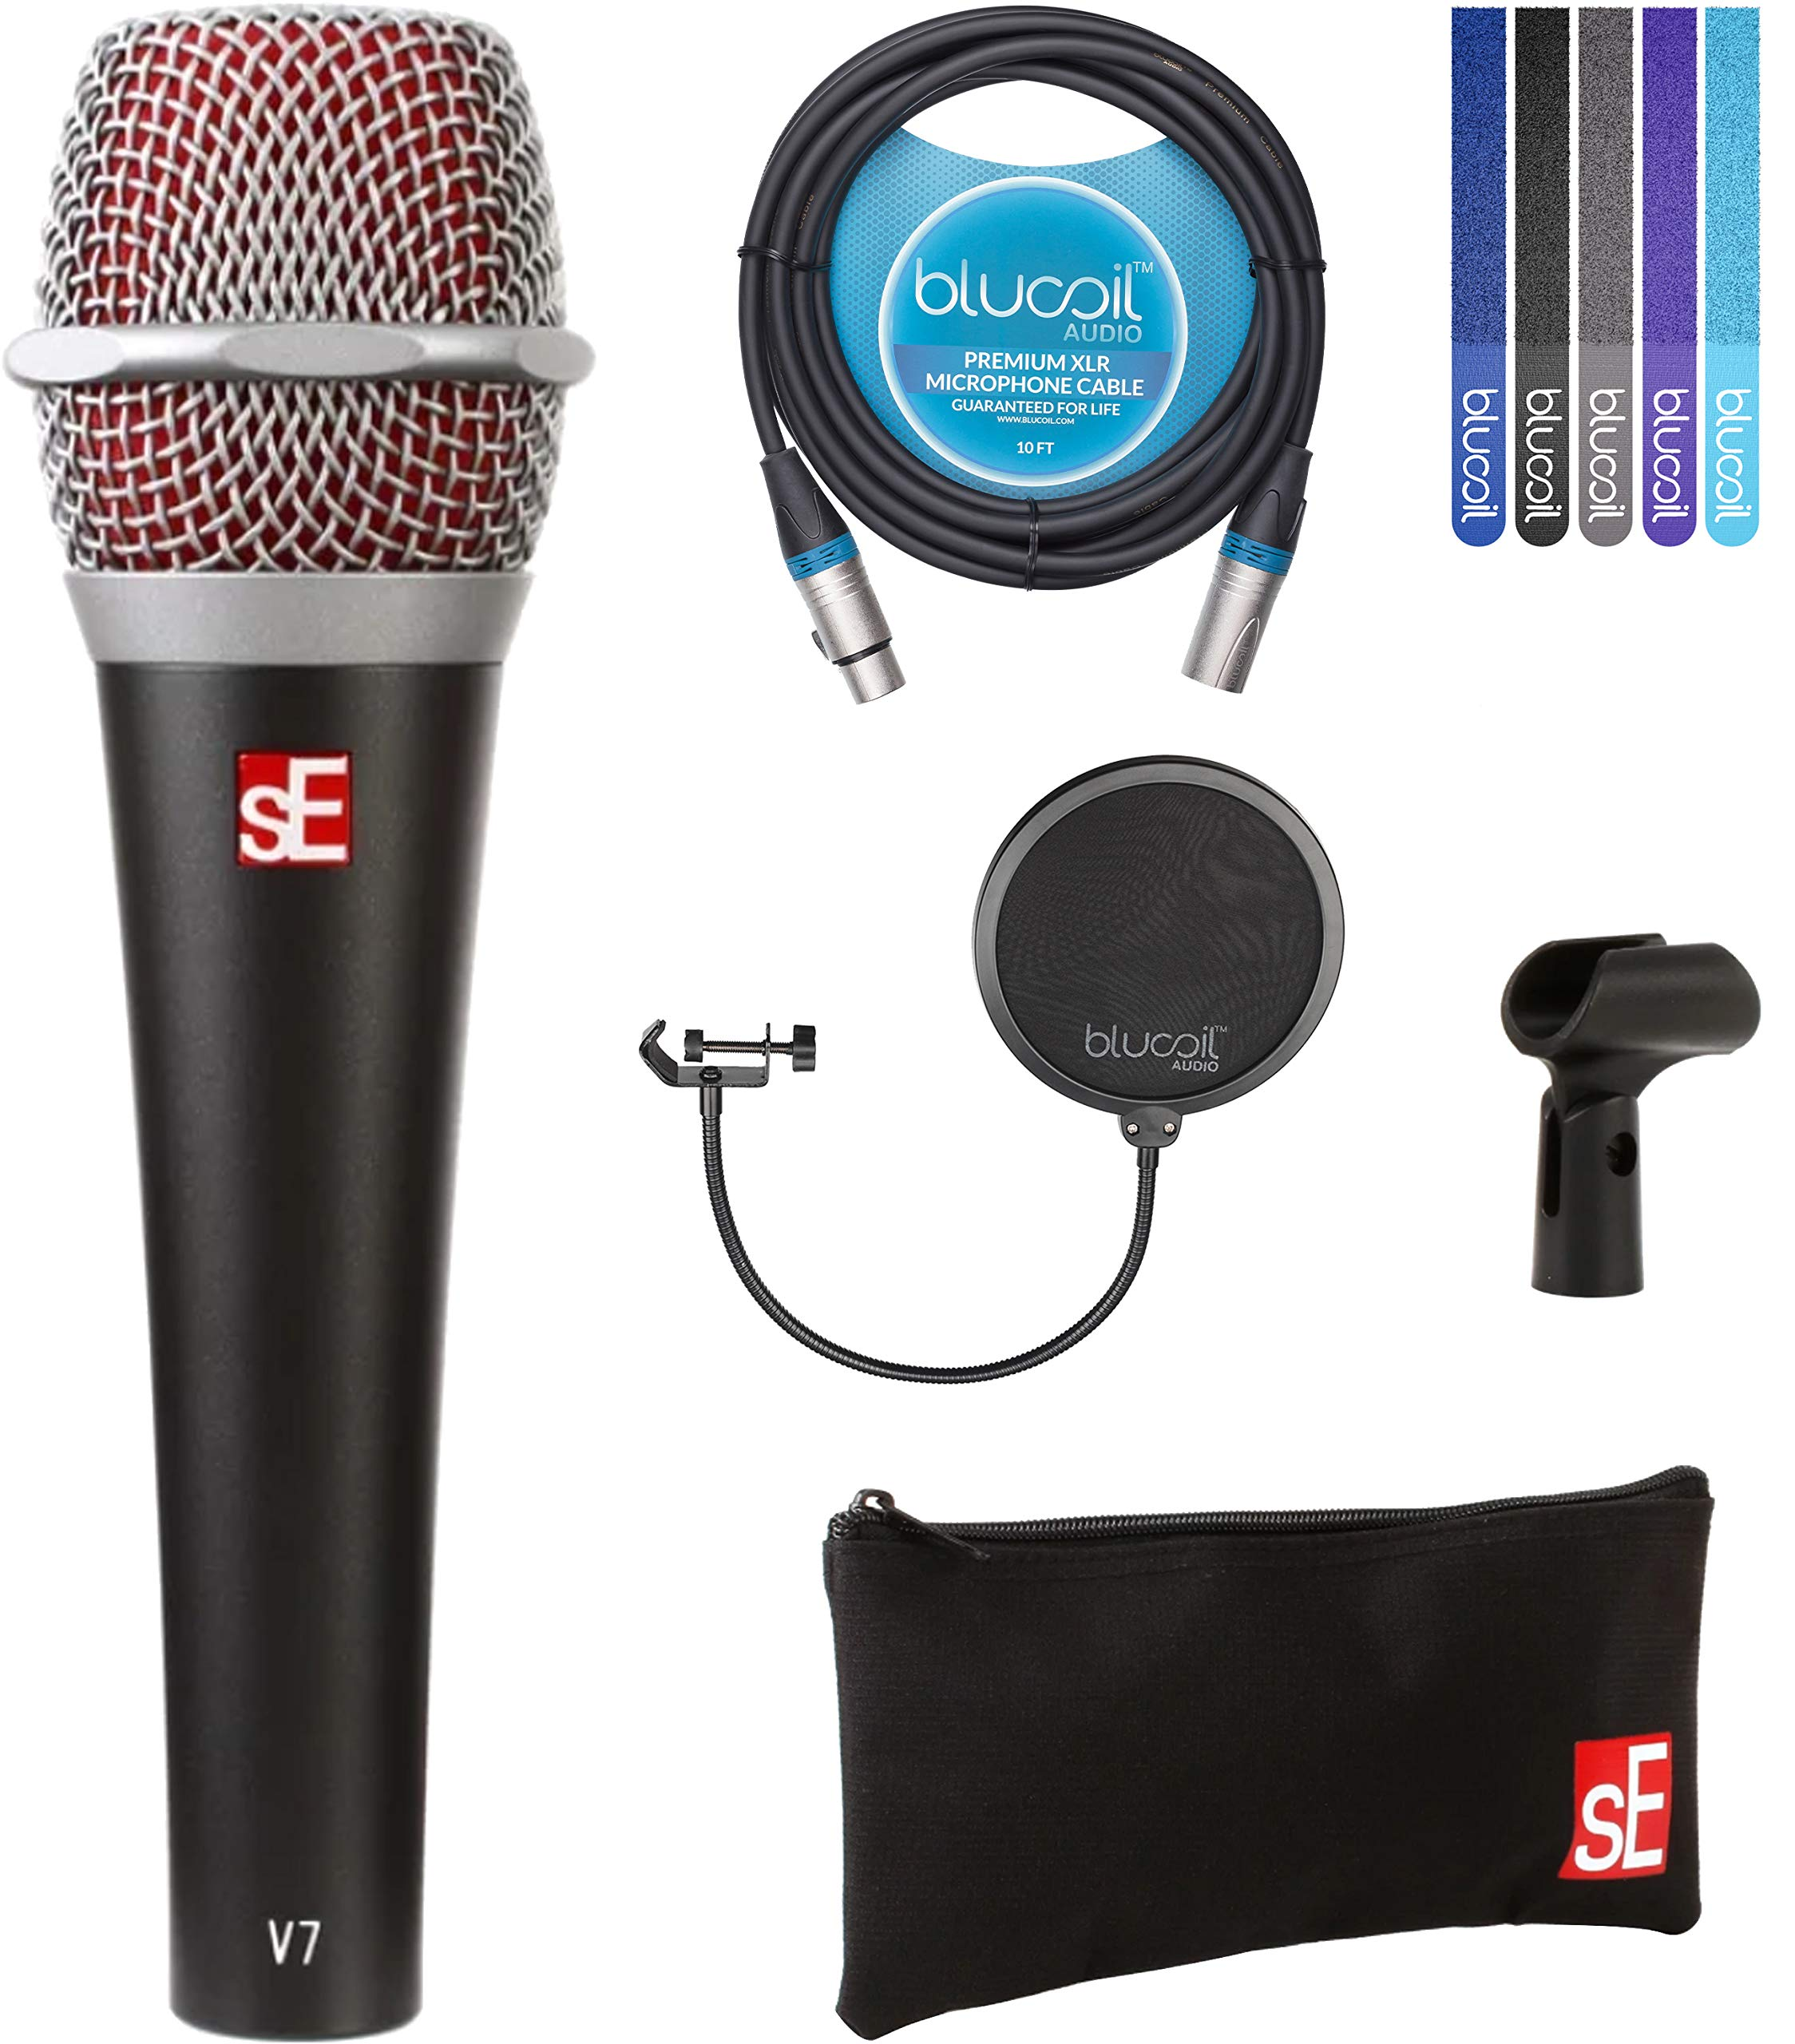 sE Electronics V7 Supercardioid Vocal Dynamic Handheld Microphone Bundle with Blucoil 10-FT Balanced XLR Cable, Pop Filter Windscreen, and 5-Pack of Reusable Velcro Cable Ties by Blucoil